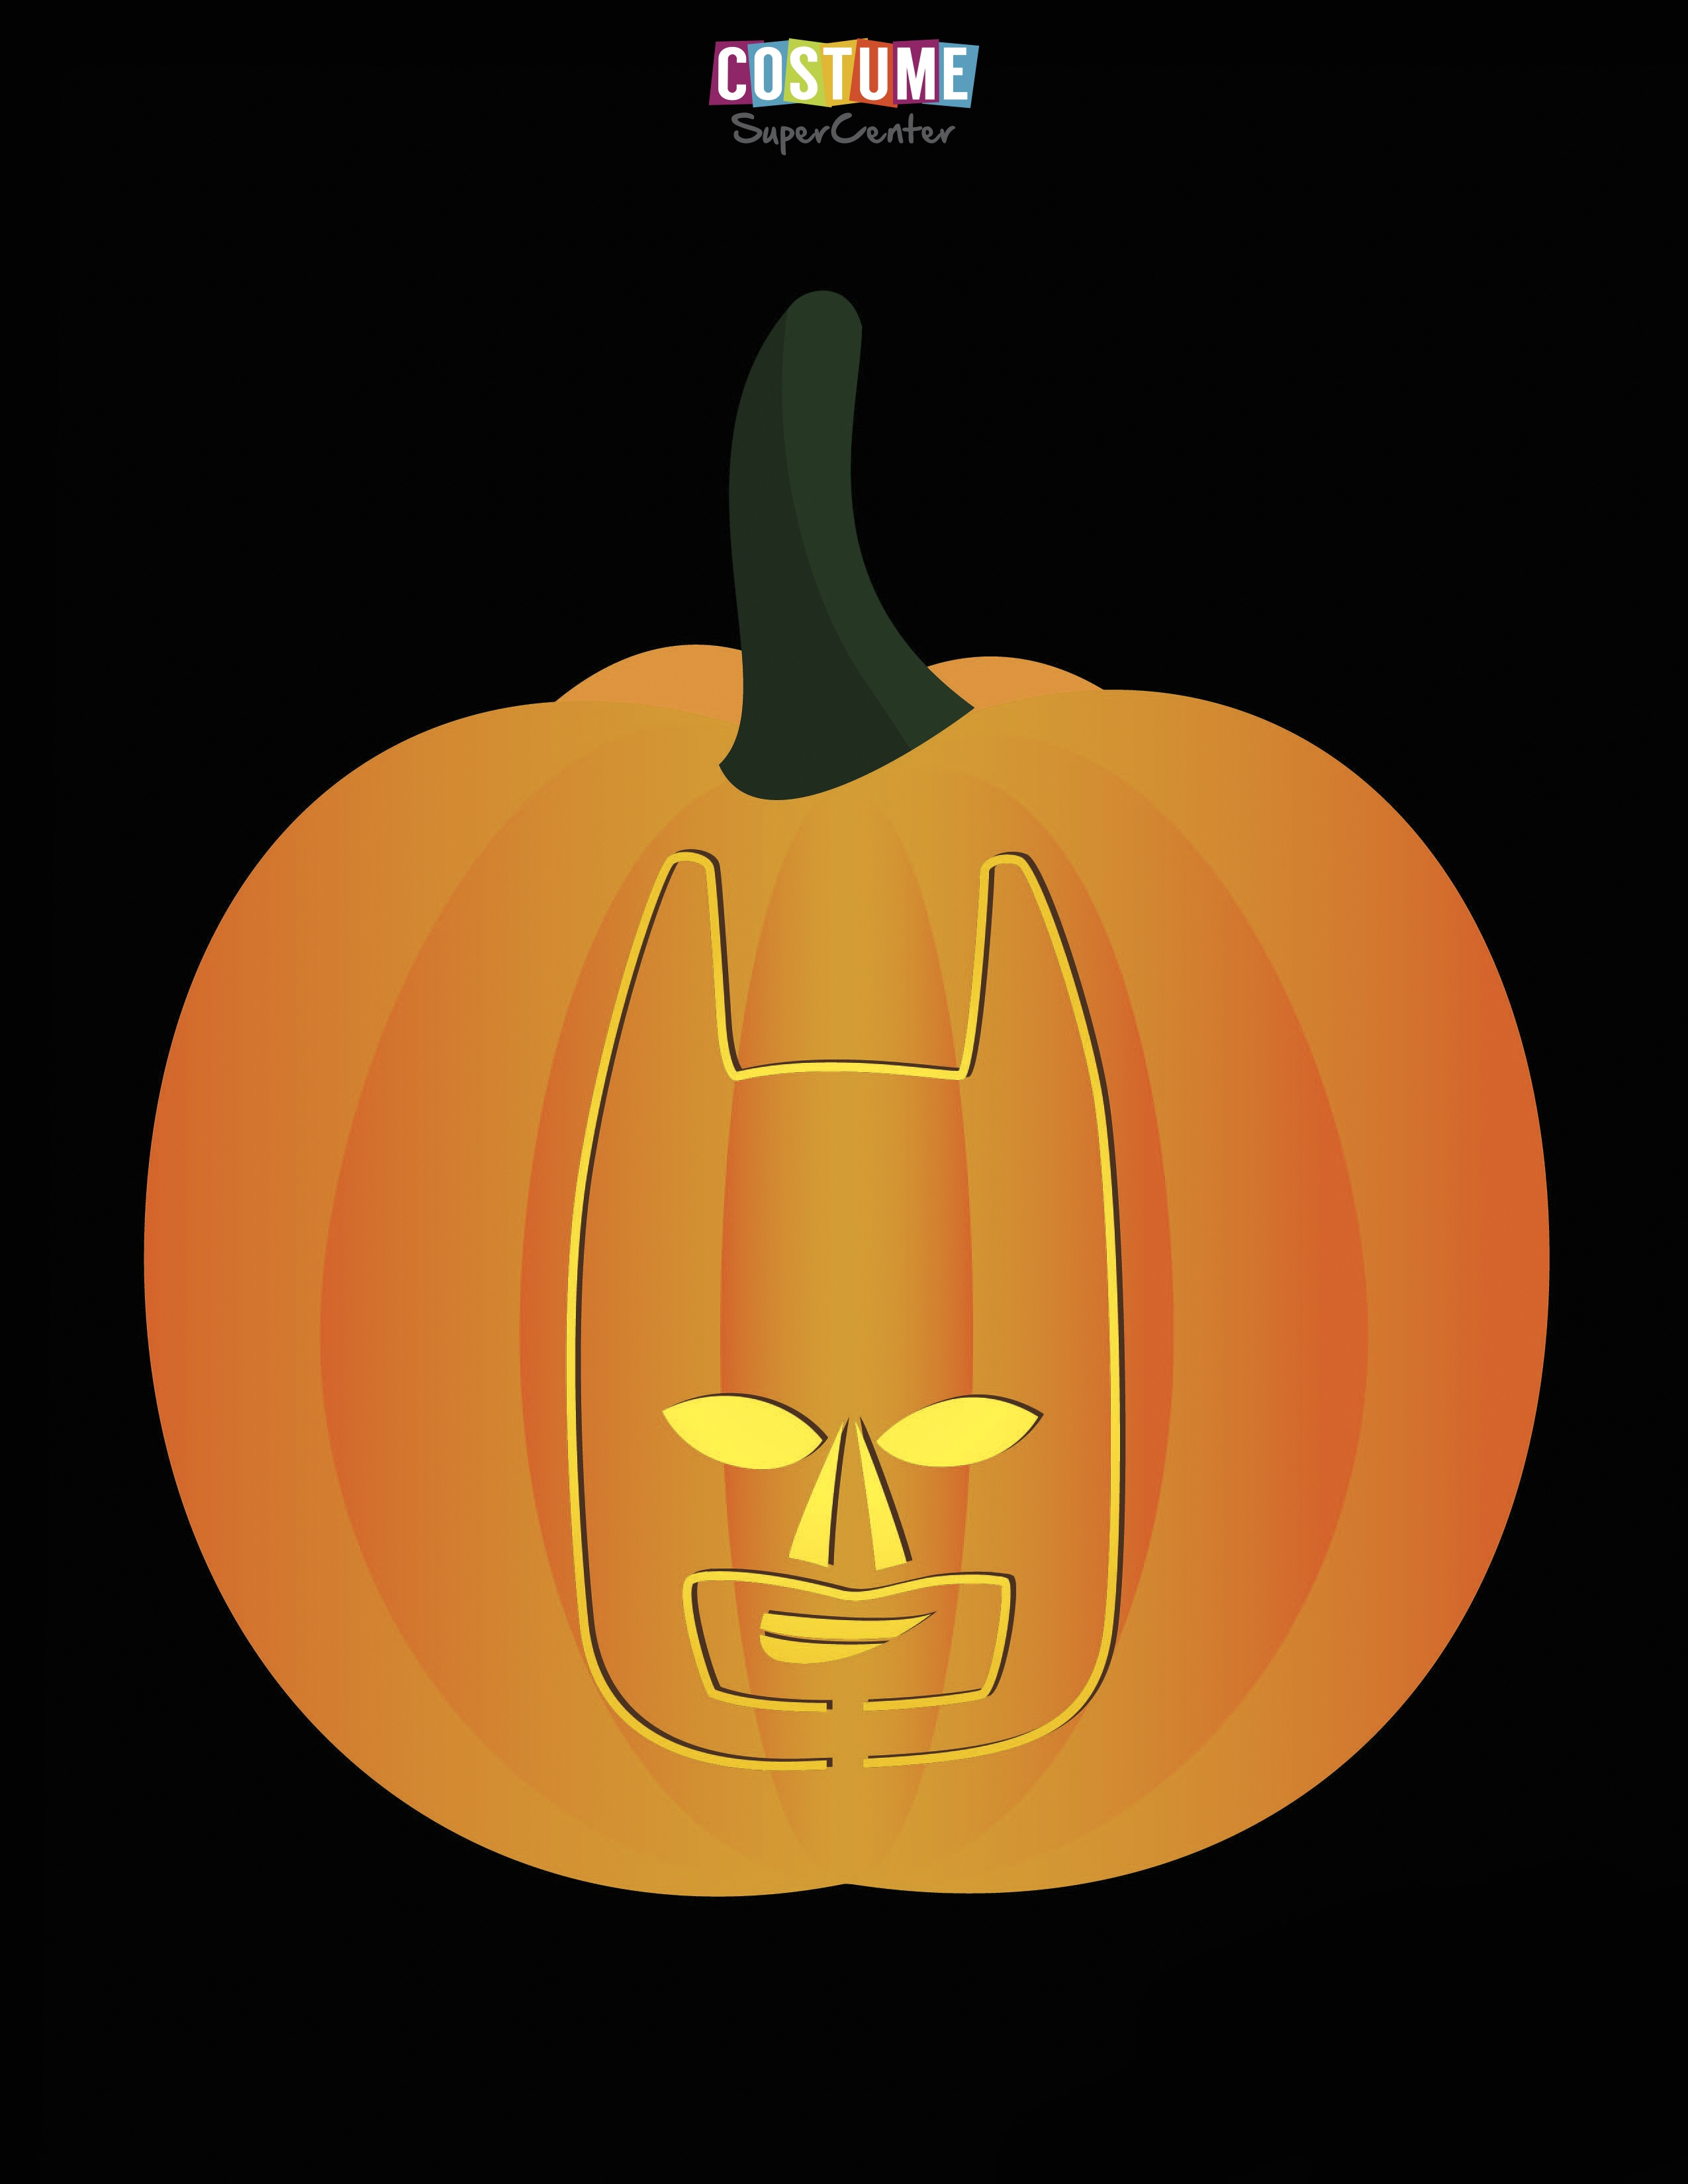 Fun And Free Printable Themed Pumpkin Carving Stencils — All For The - Free Printable Pumpkin Stencils